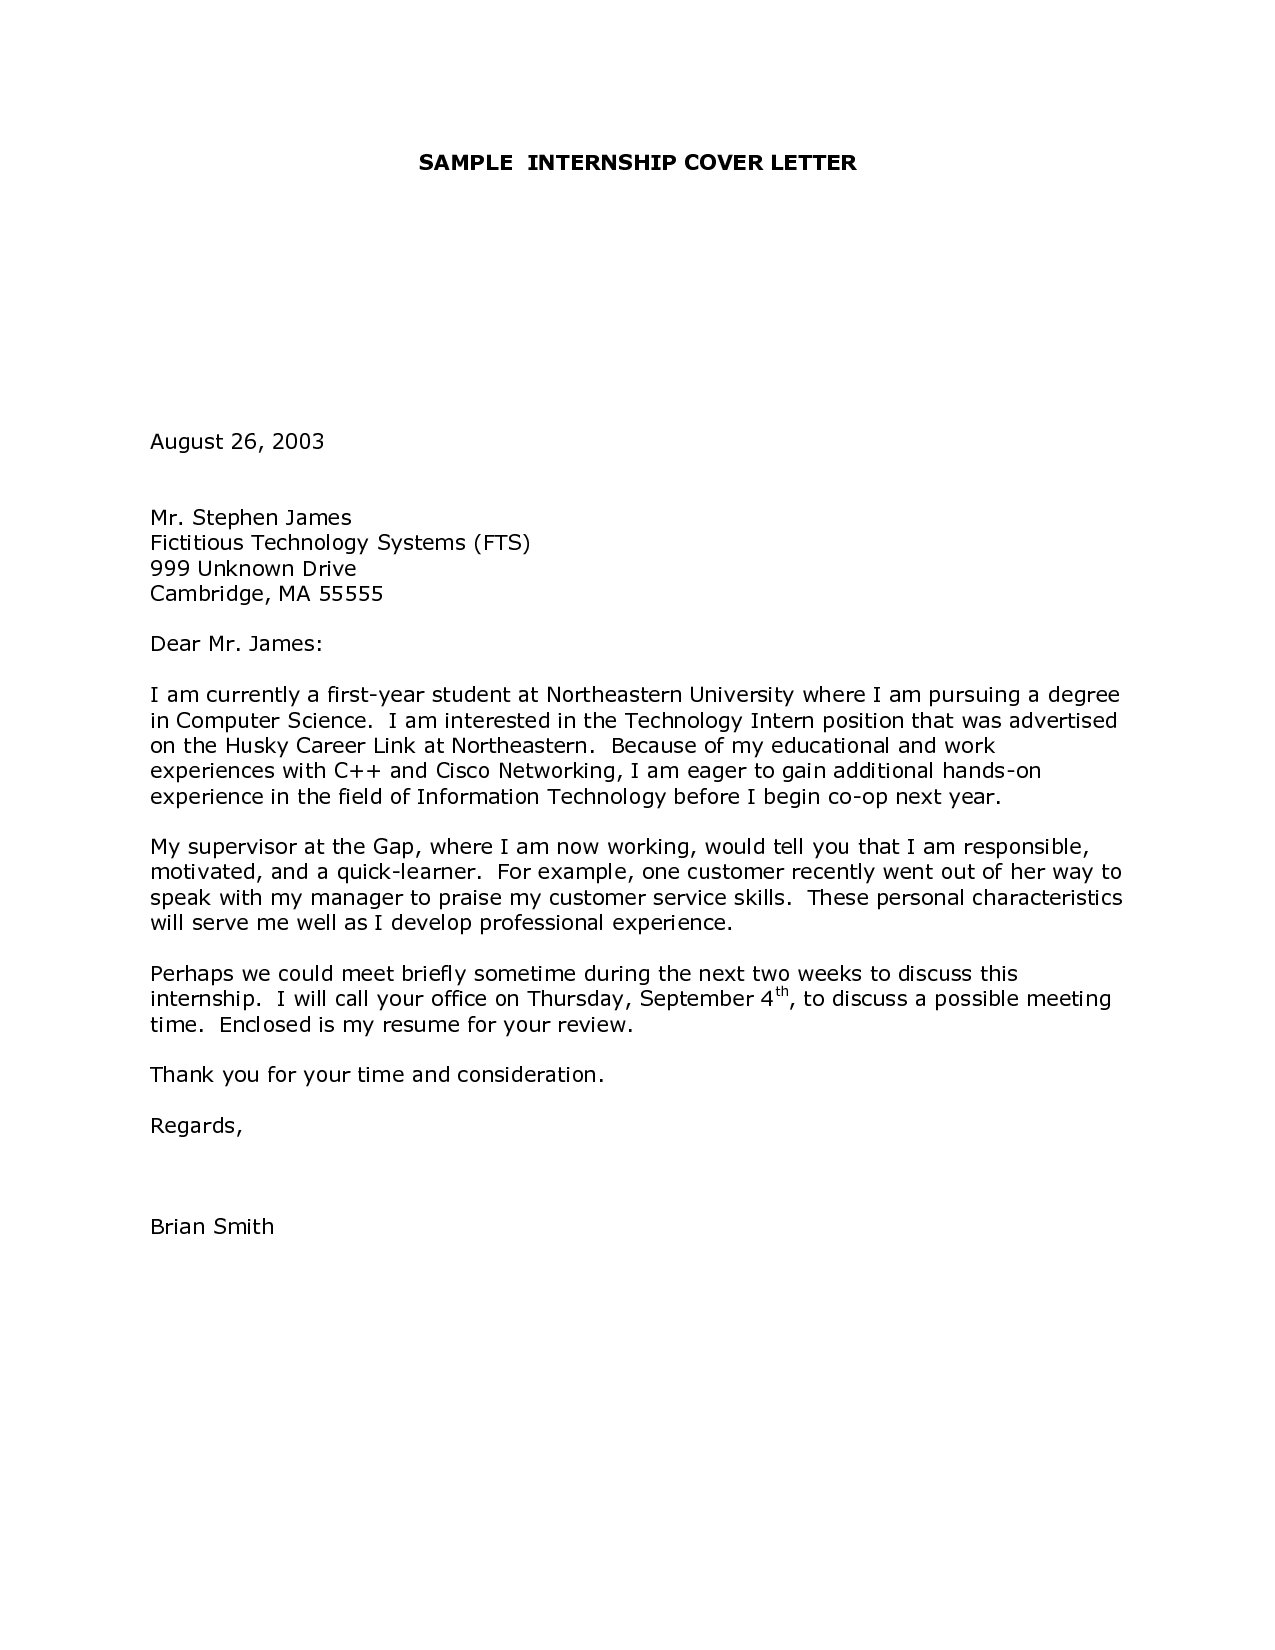 Best Of Sample Cover Letter for Internship Graphics